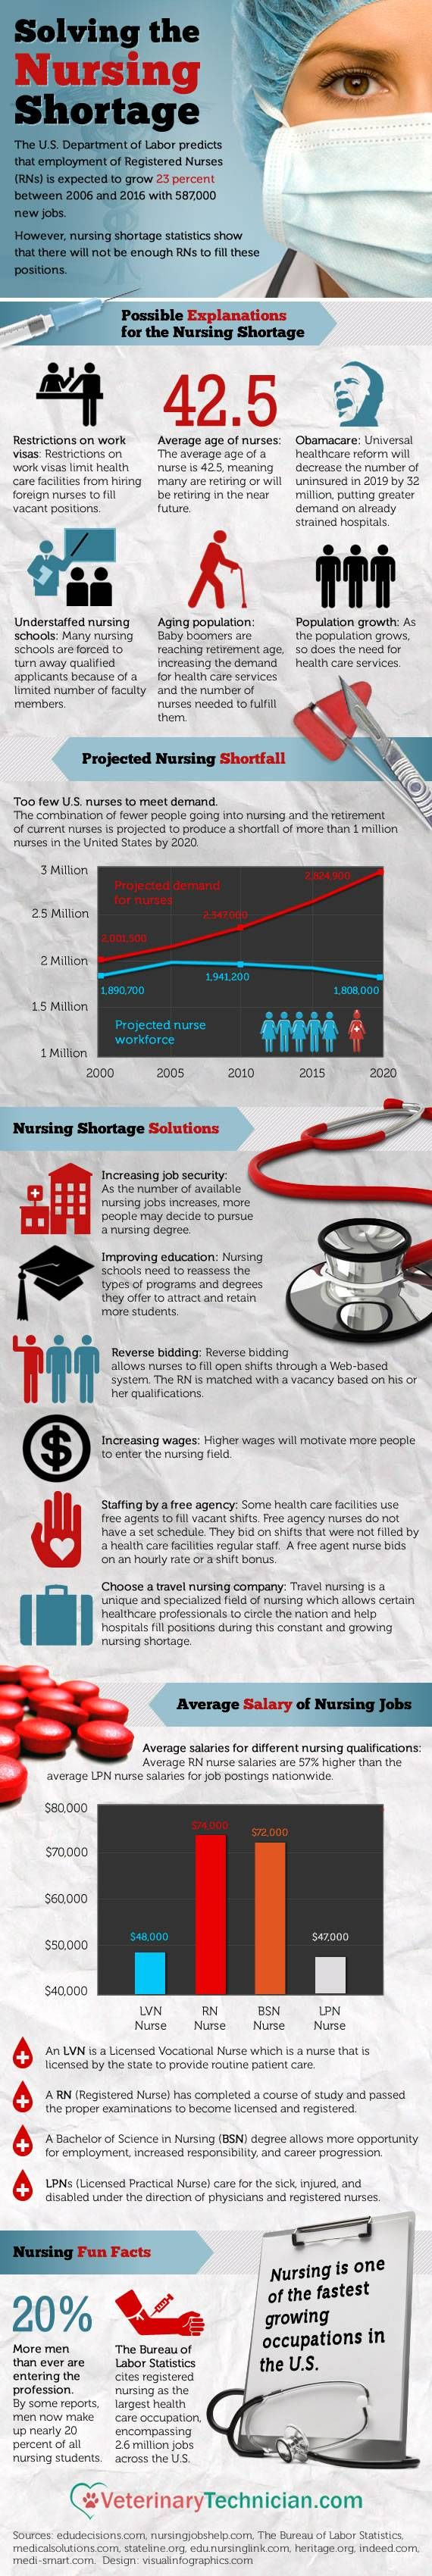 best ideas about nursing shortage nursing school nurse shortage info nursing needs to reassess the educational requirements for nurse educators